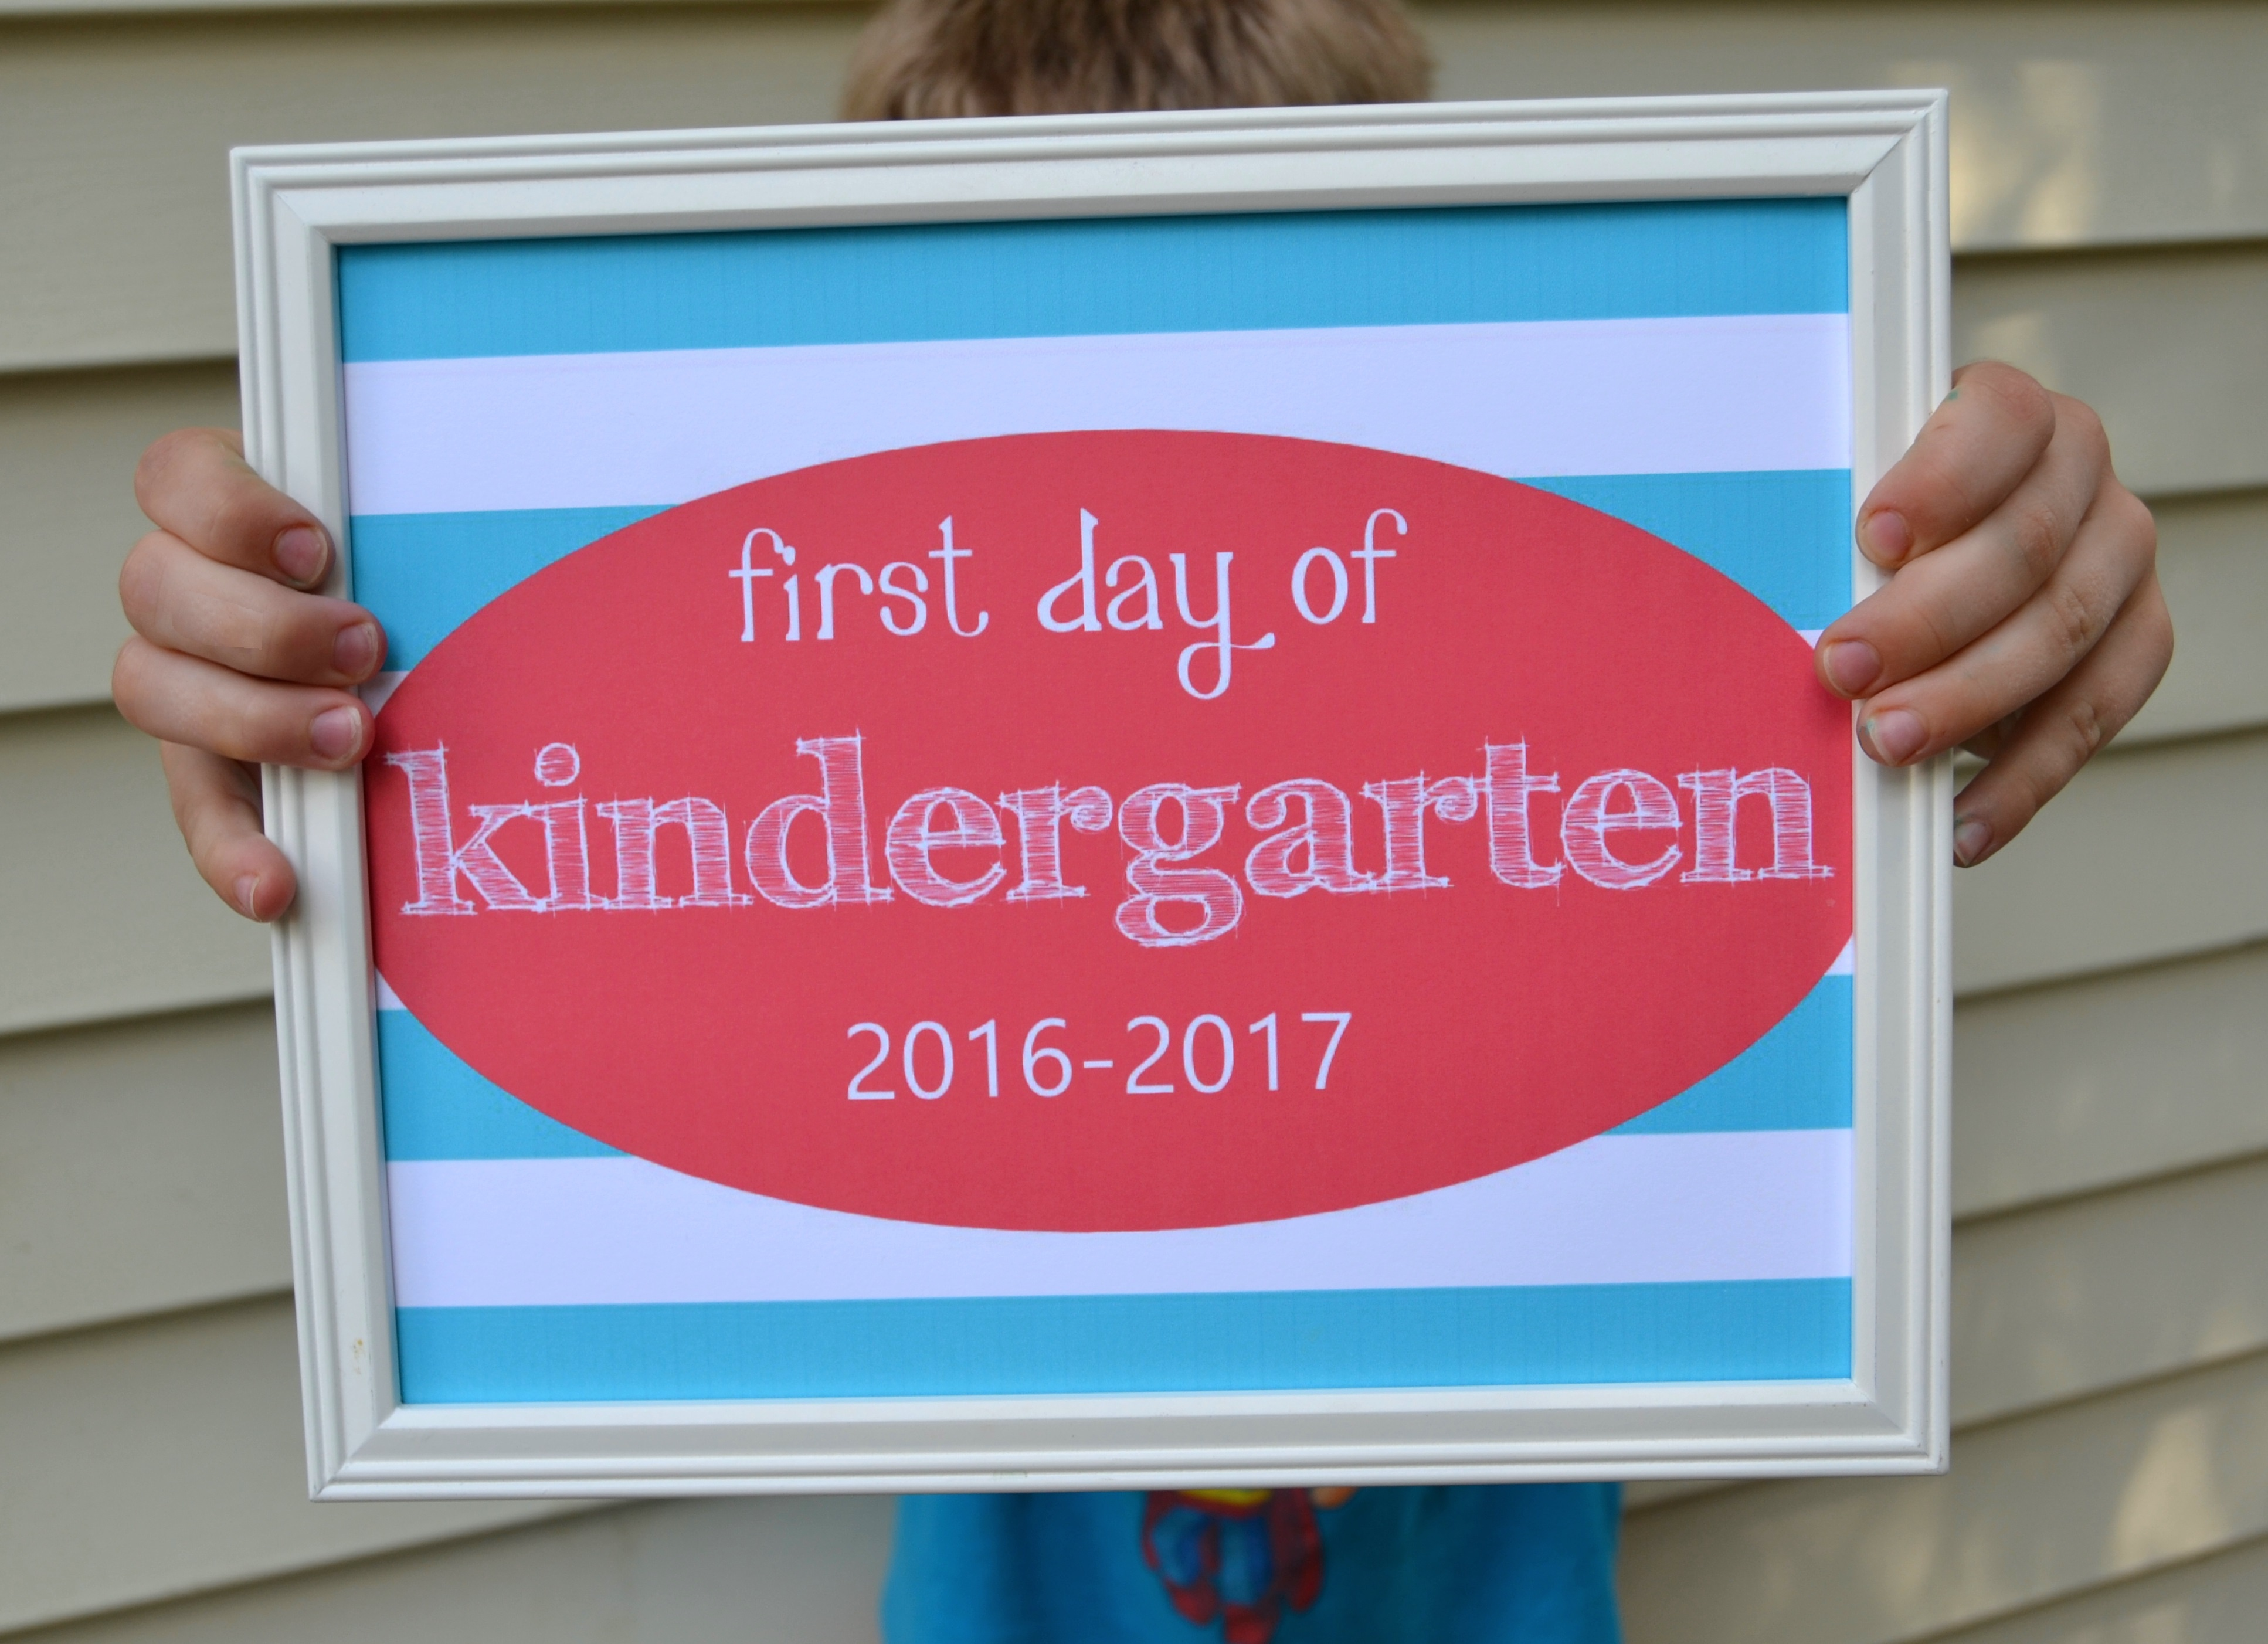 Free Printable First Day Of School Signs Archives – Mary Martha Mama - Free Printable Back To School Signs 2017